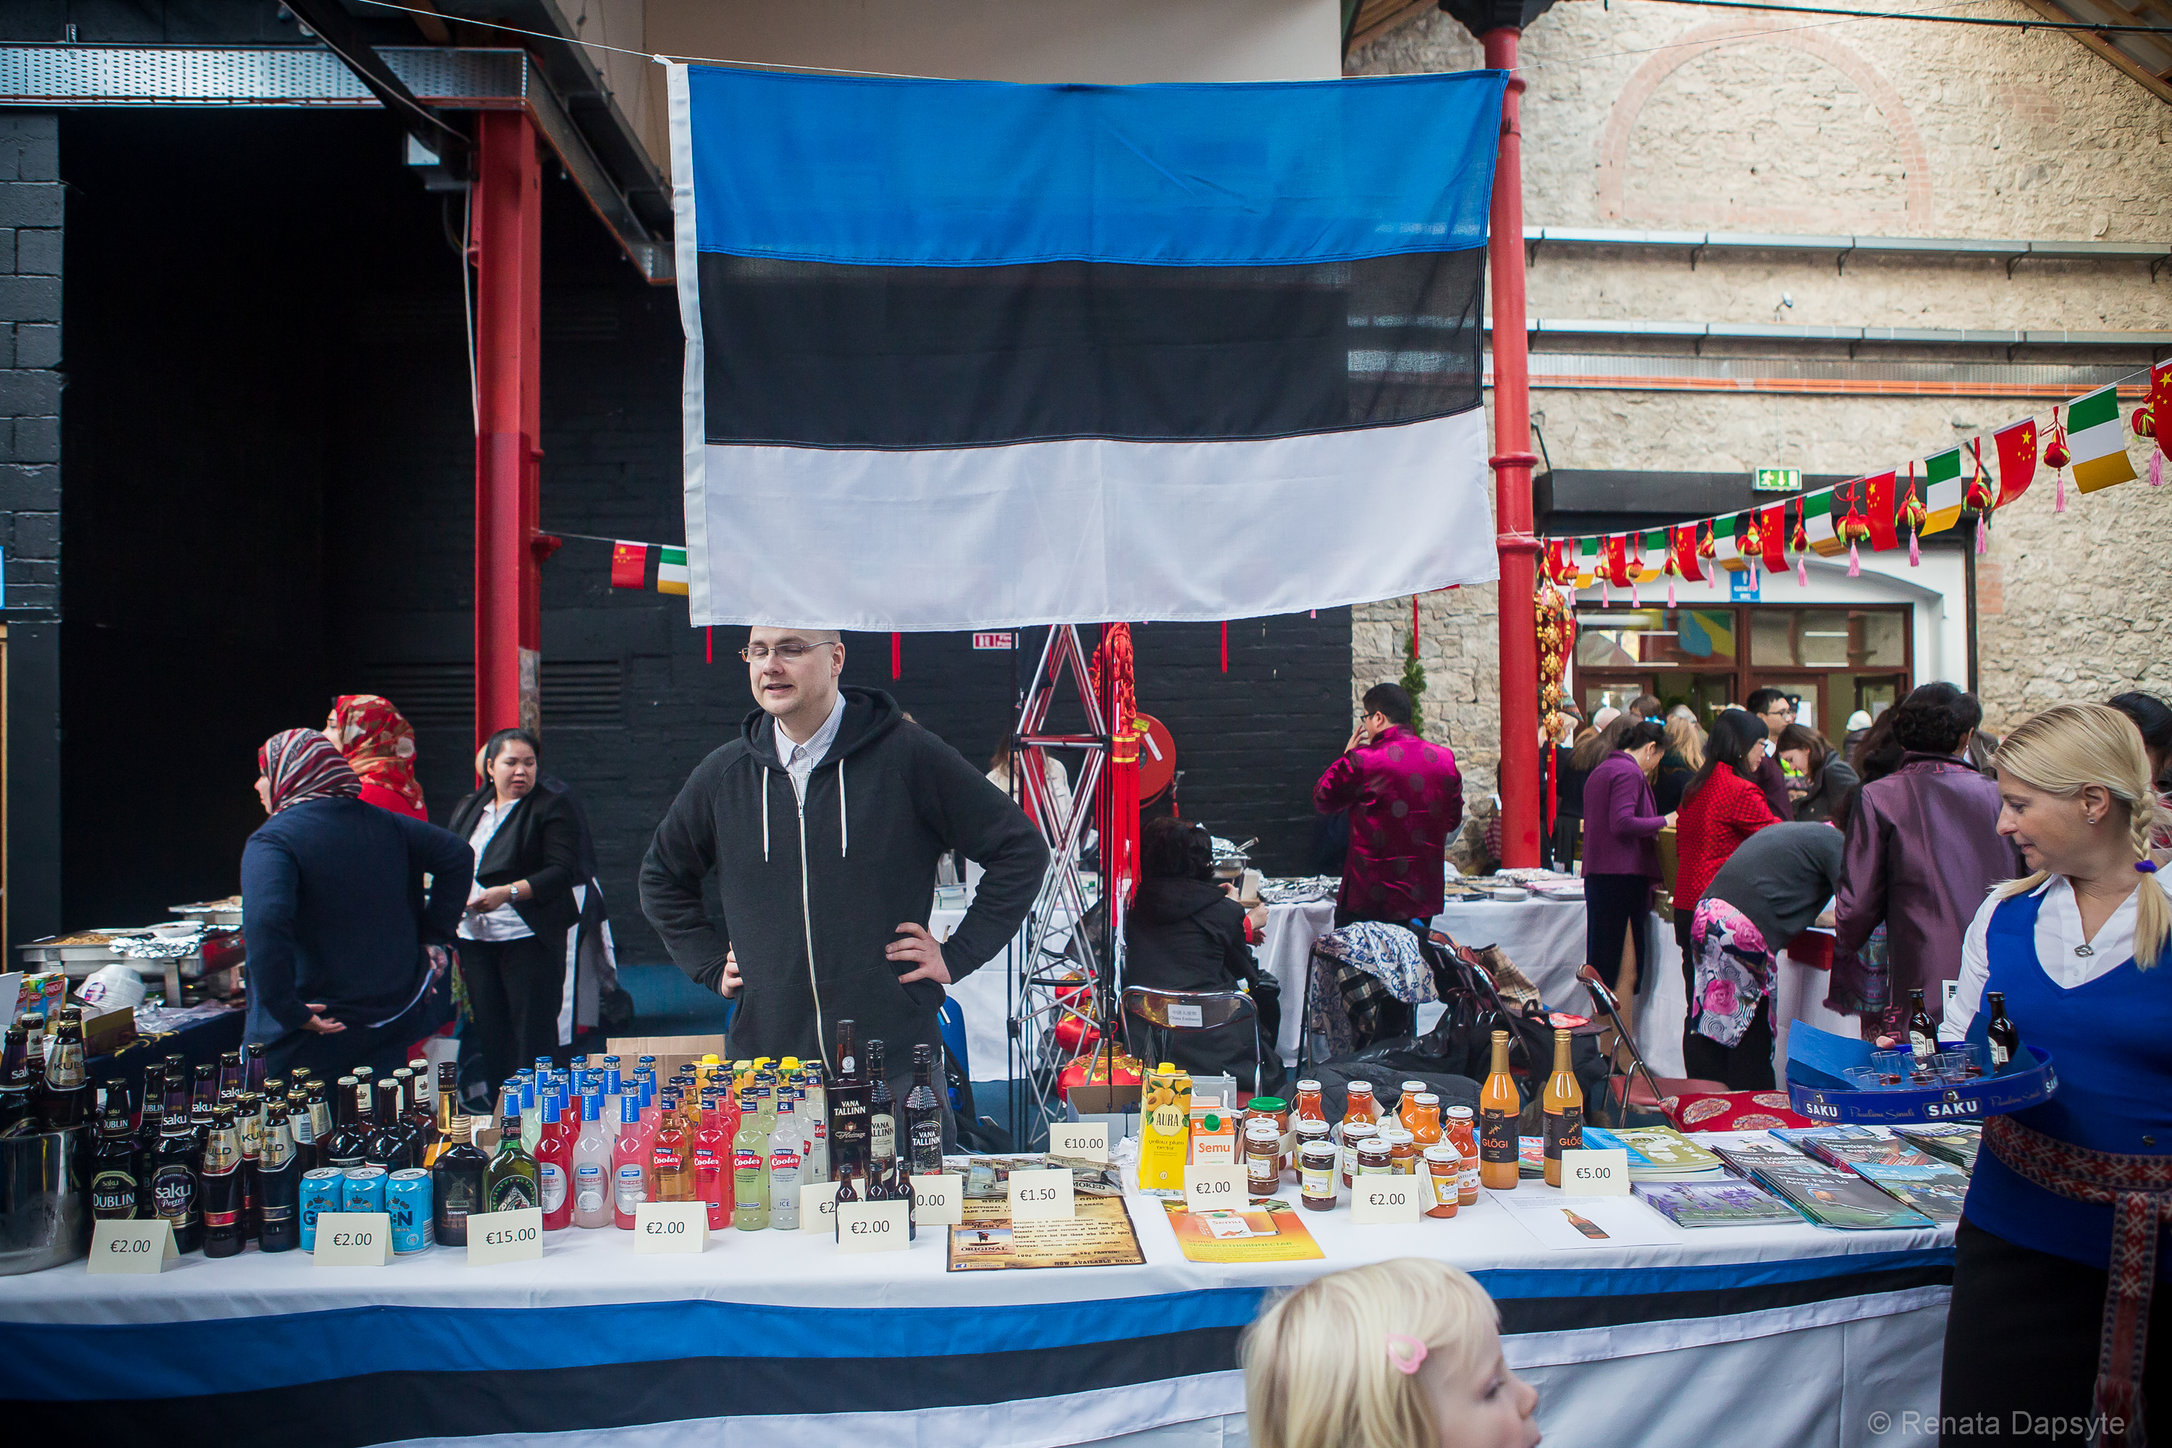 078_International Charity Bazaar Dublin 2013.JPG